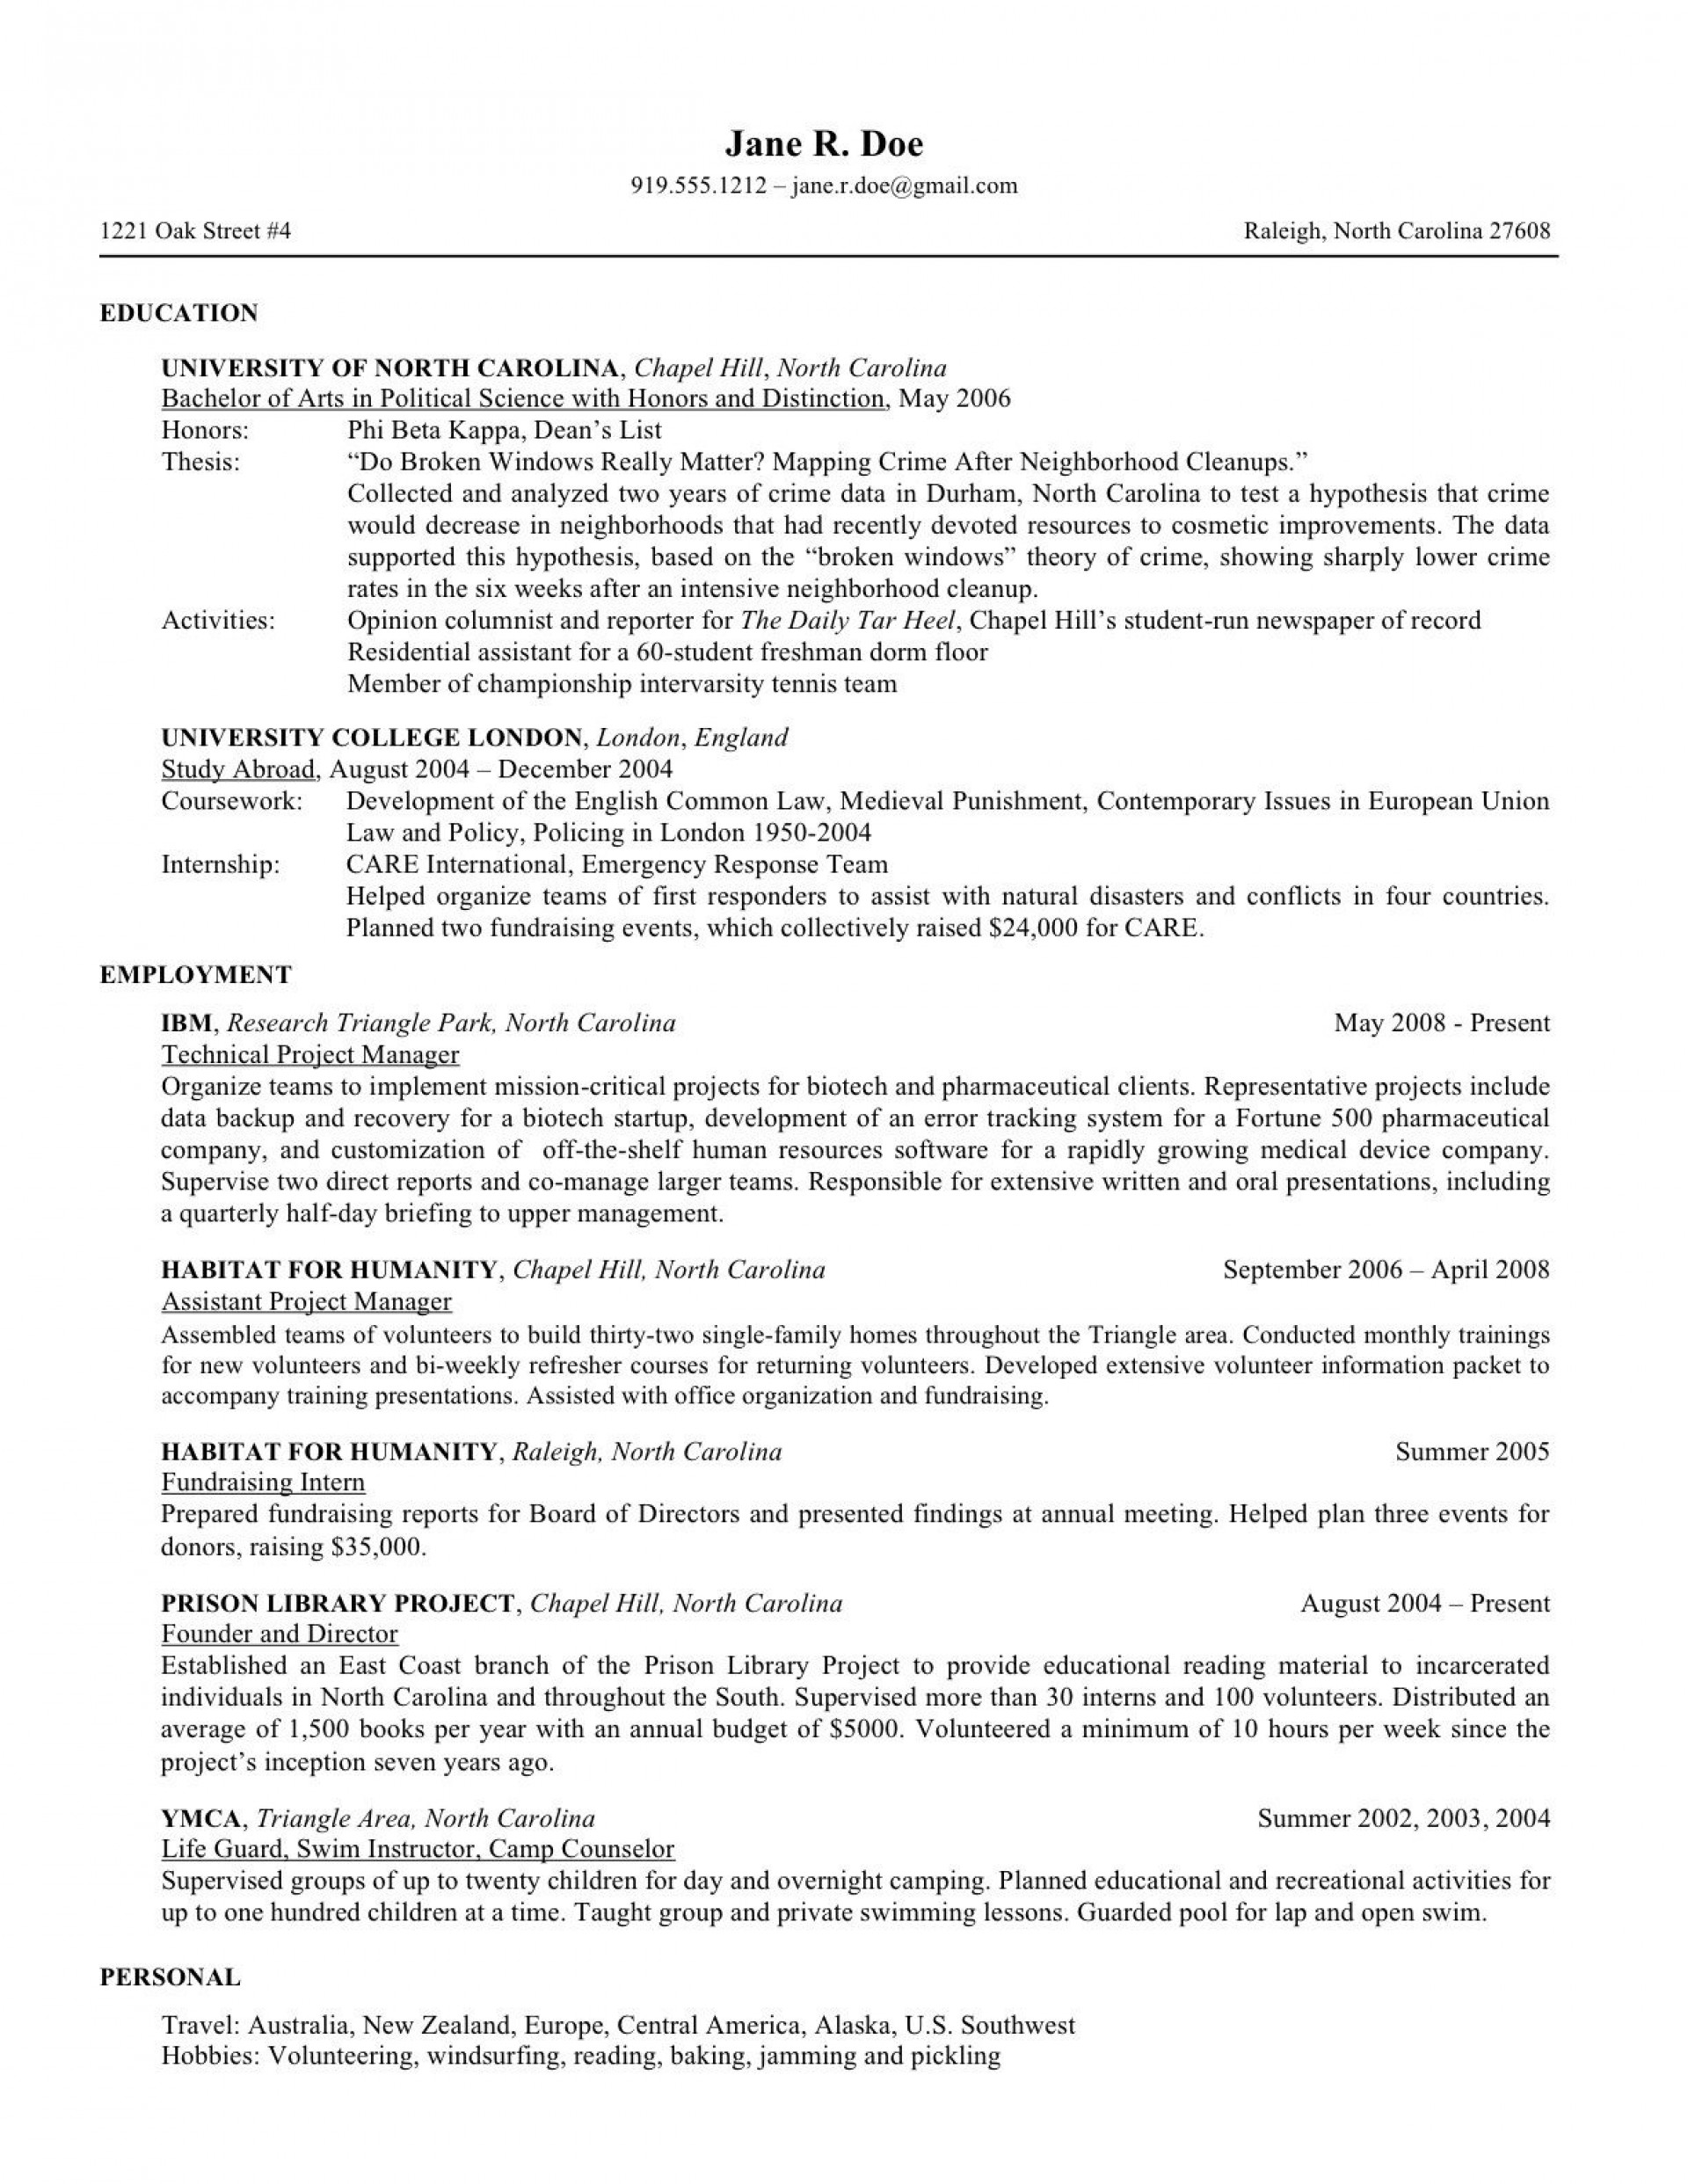 002 Rare Grad School Application Cv Template High Resolution  Graduate Microsoft Word1920